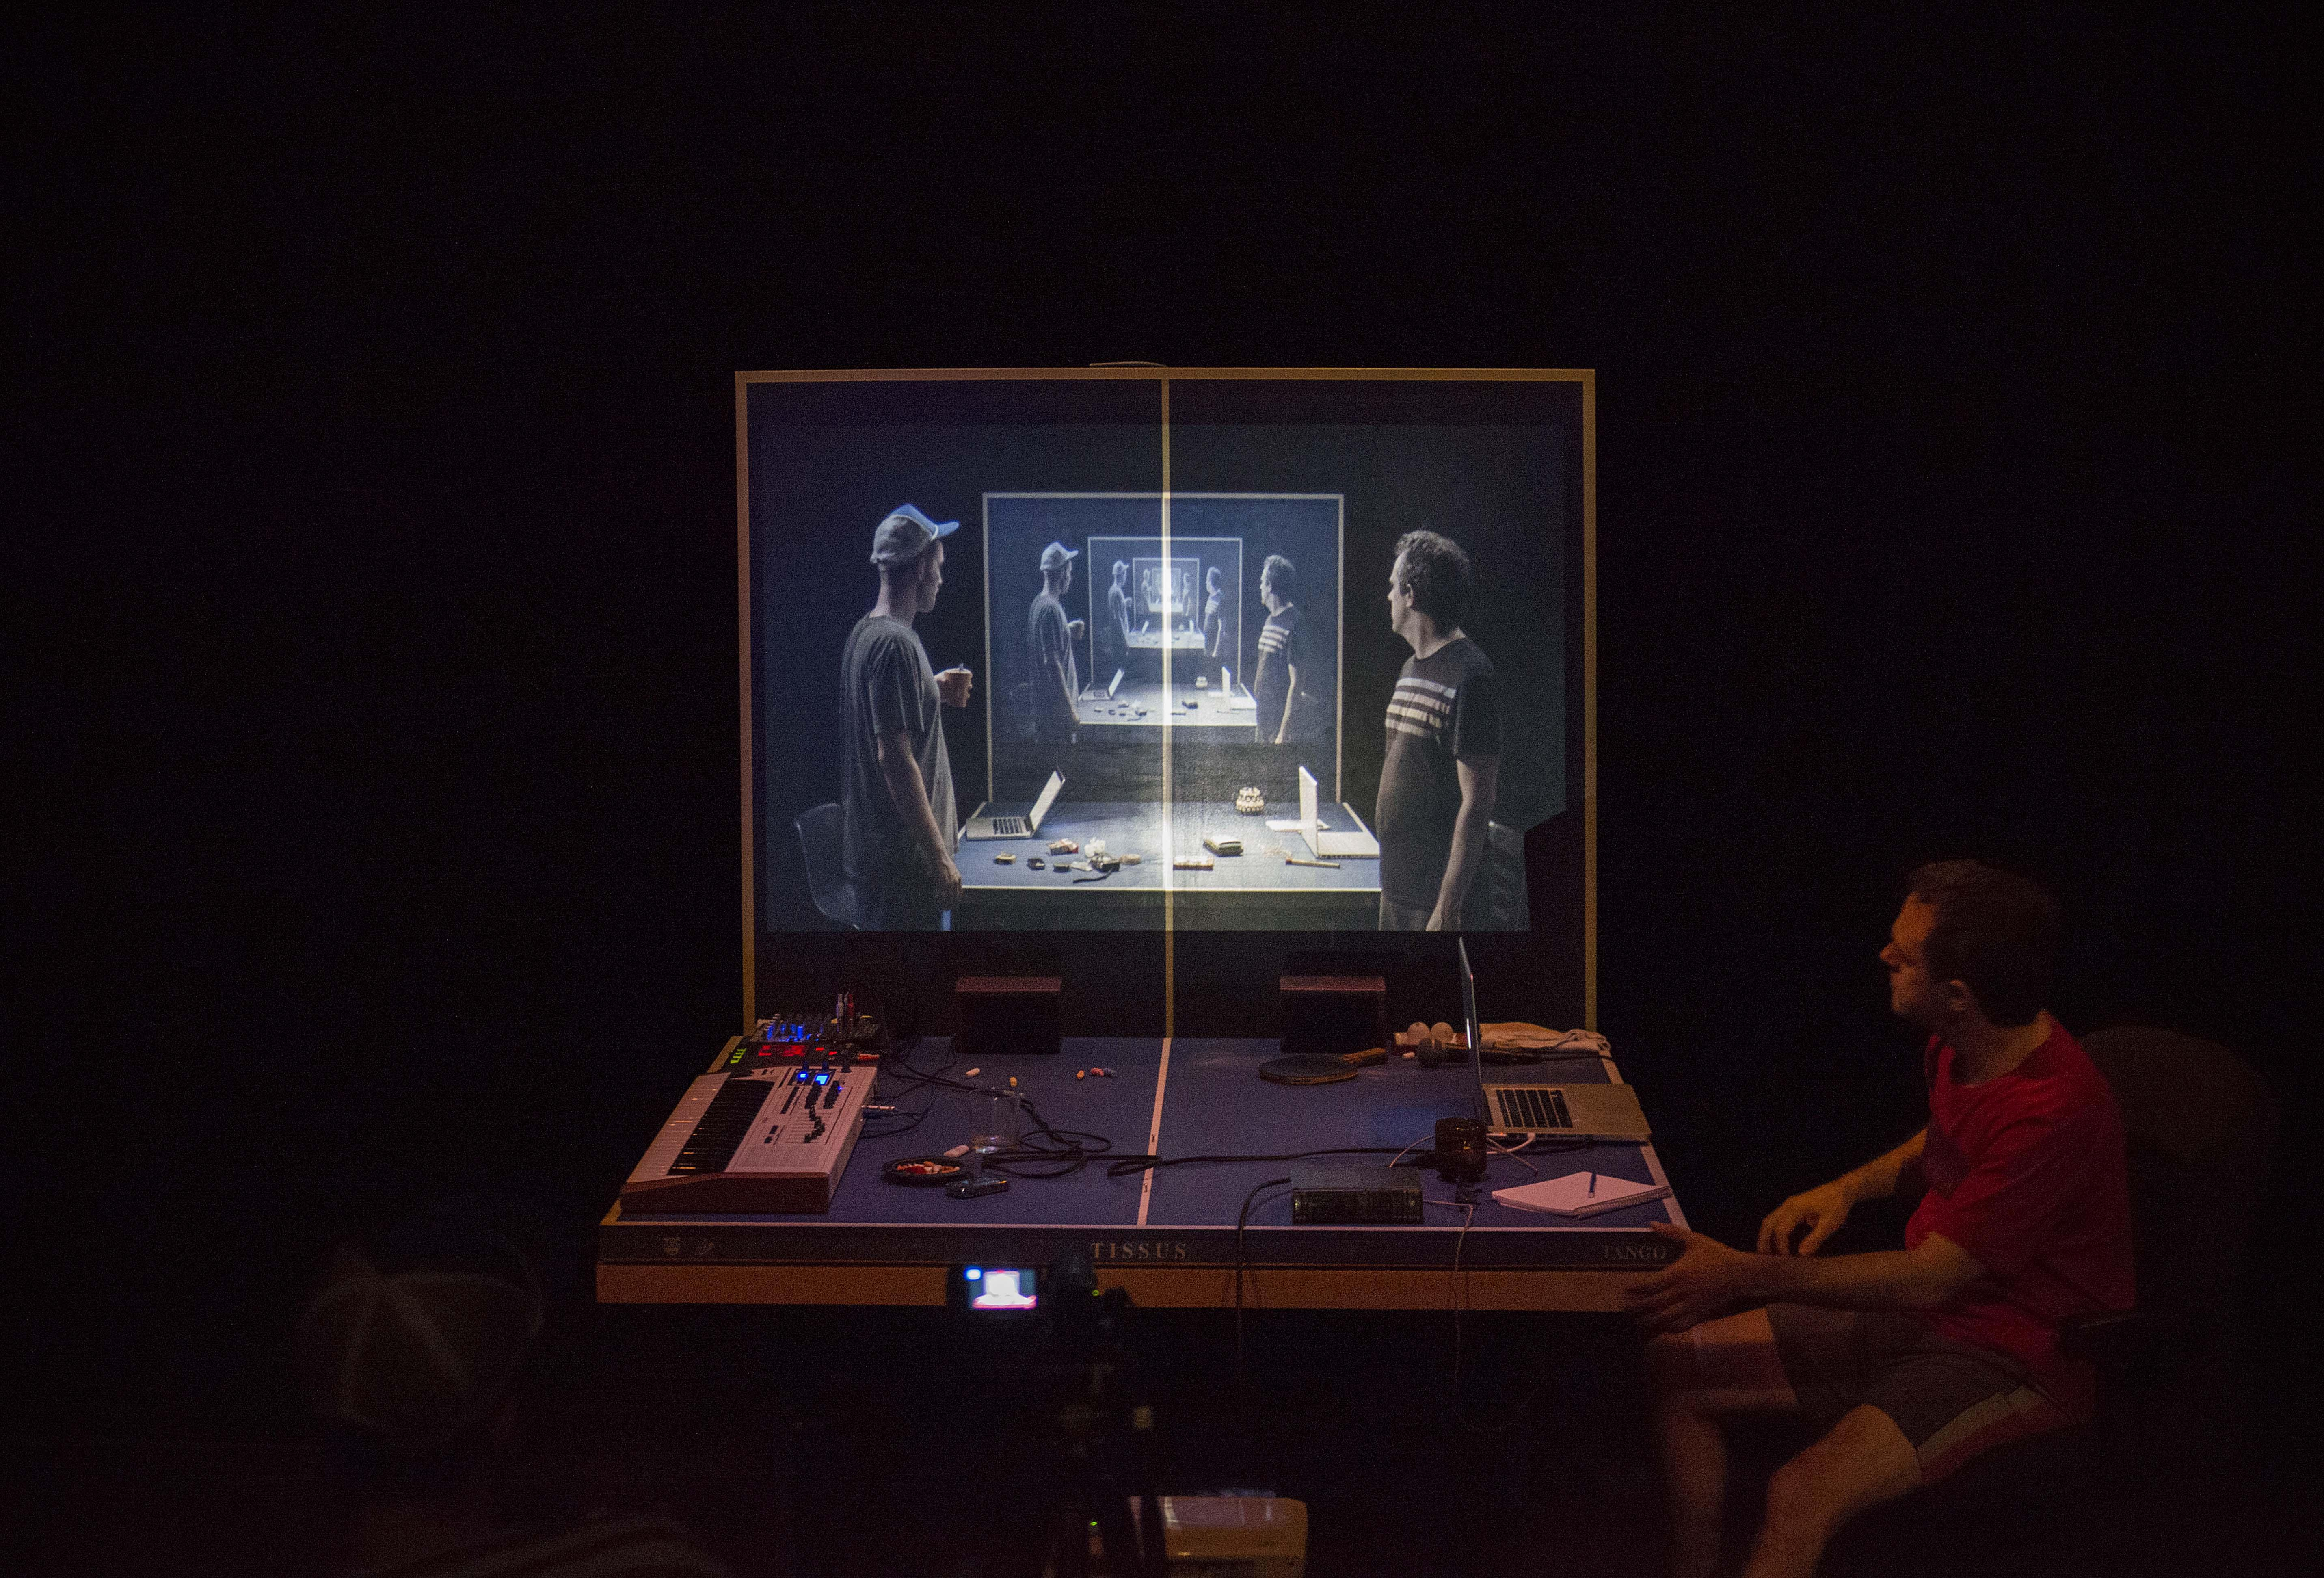 A man sits at a cluttered ping-pong table, looking at an image projected on the vertical rear half of the table. In the projected image, we see two men standing at the same table, their images repeating and receding into the distance.